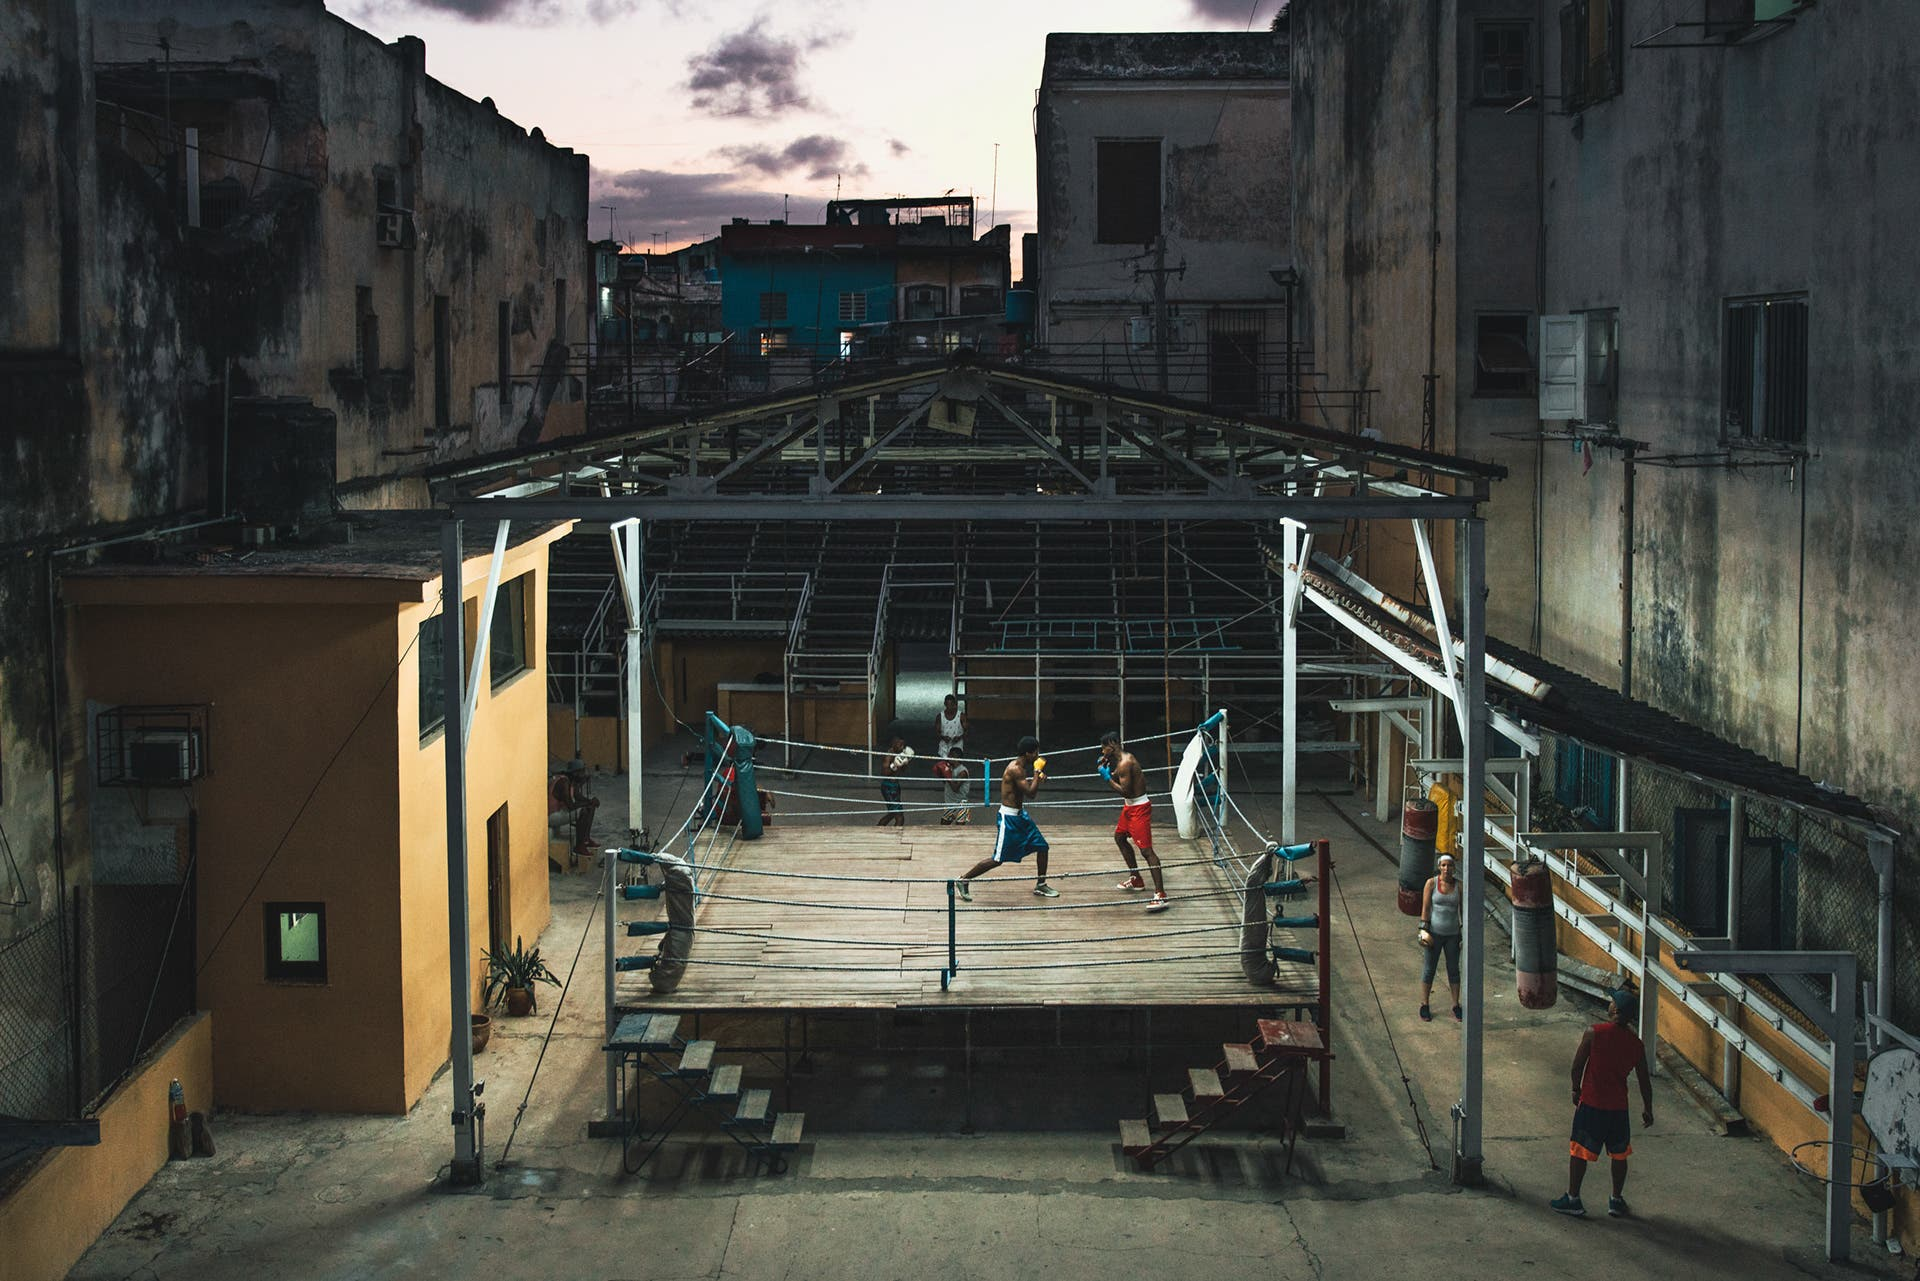 Photographing Inside Cuba's Legendary Boxing Gym